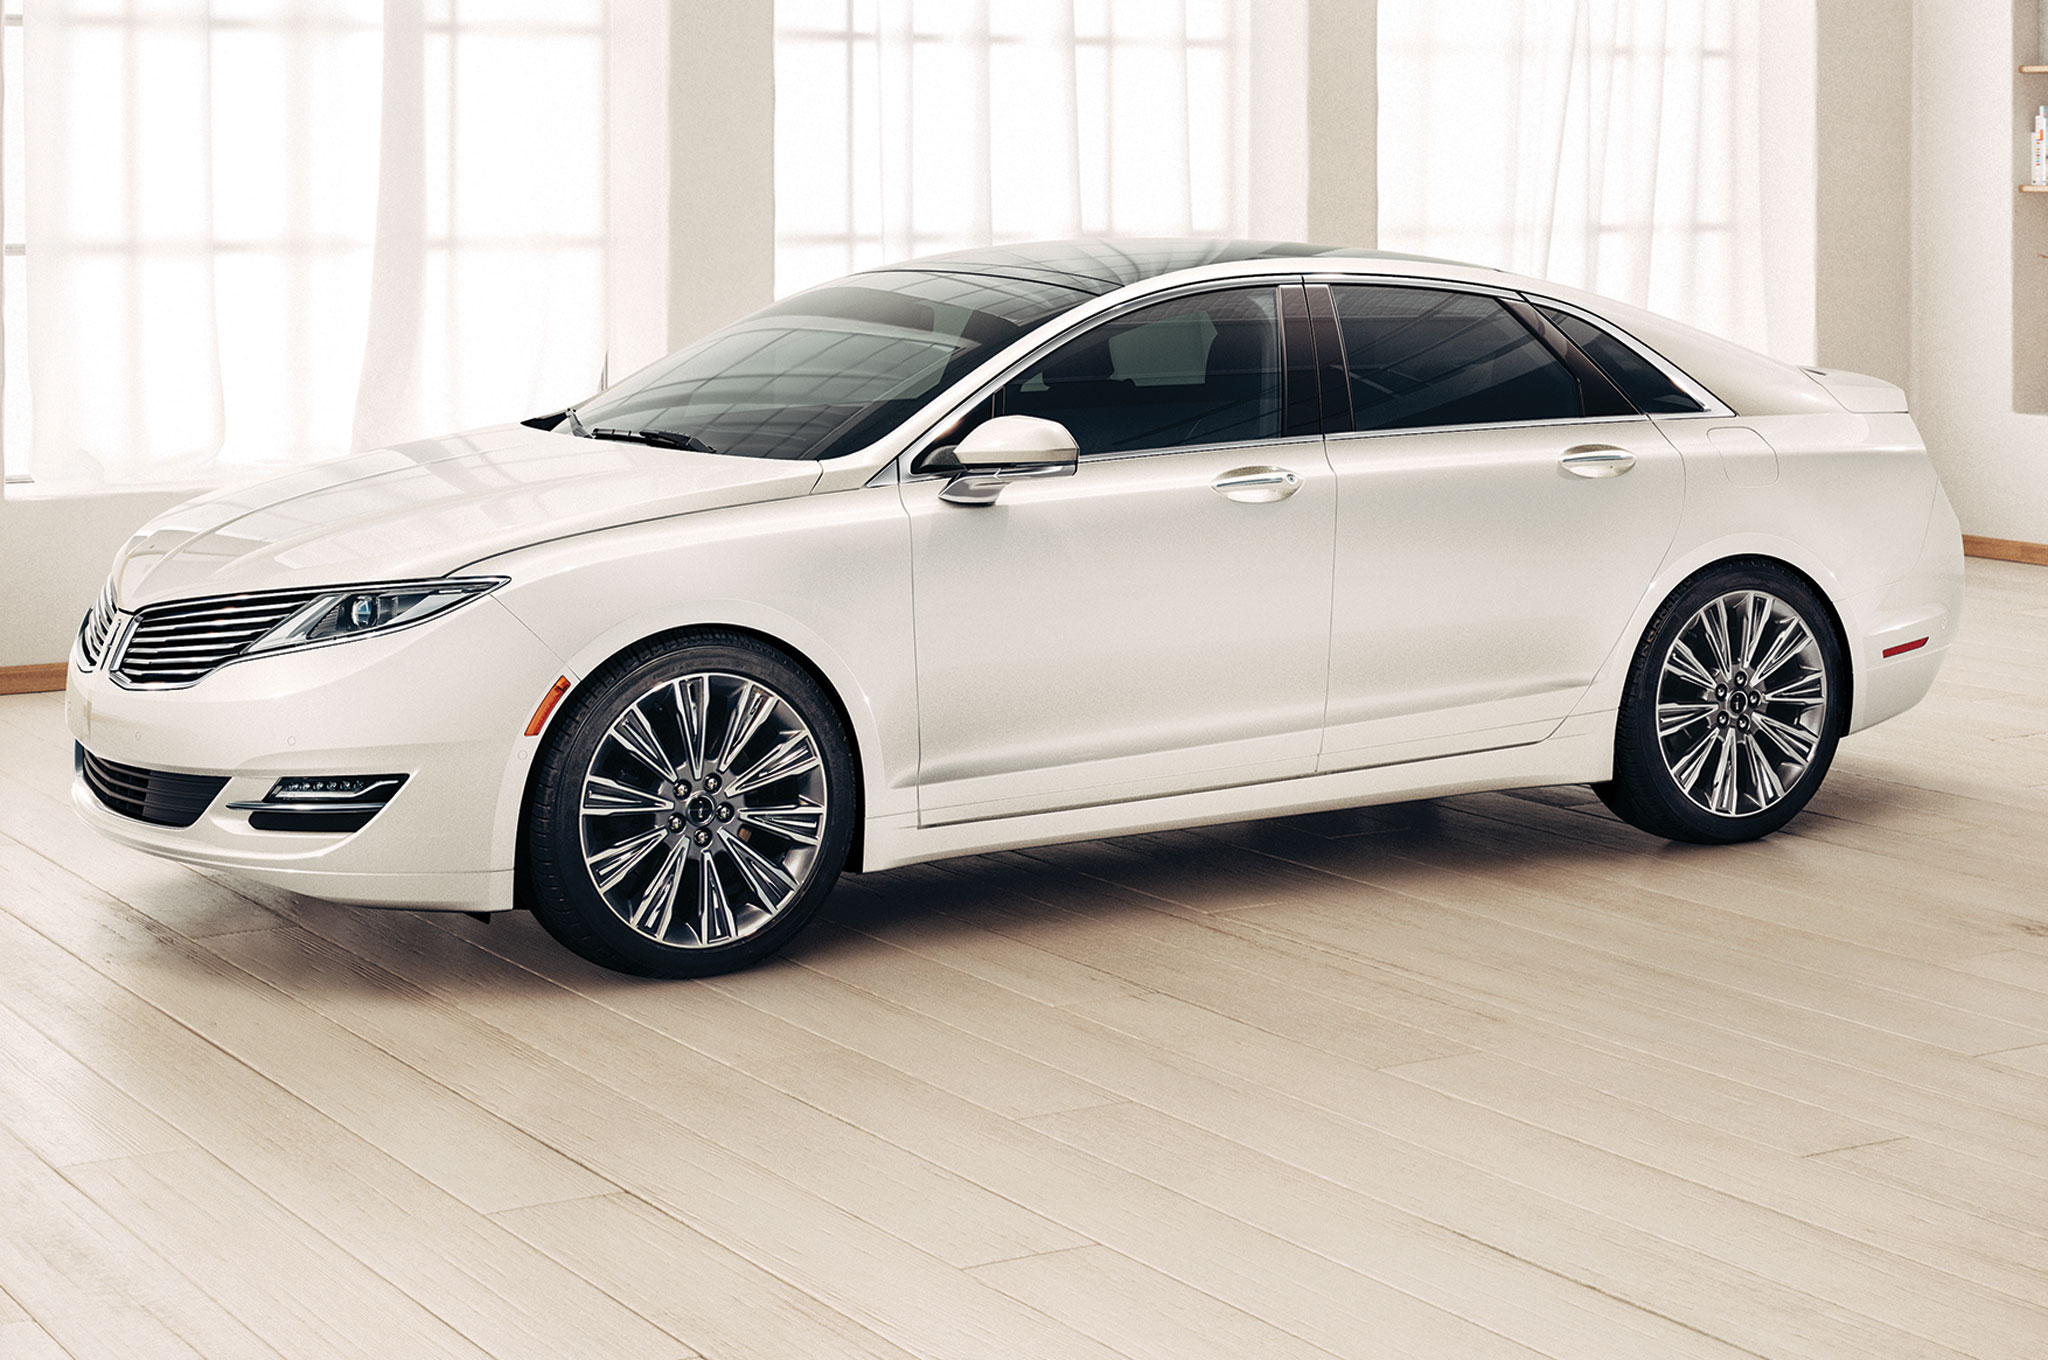 lincoln mkz mks information photos and zombiedrive